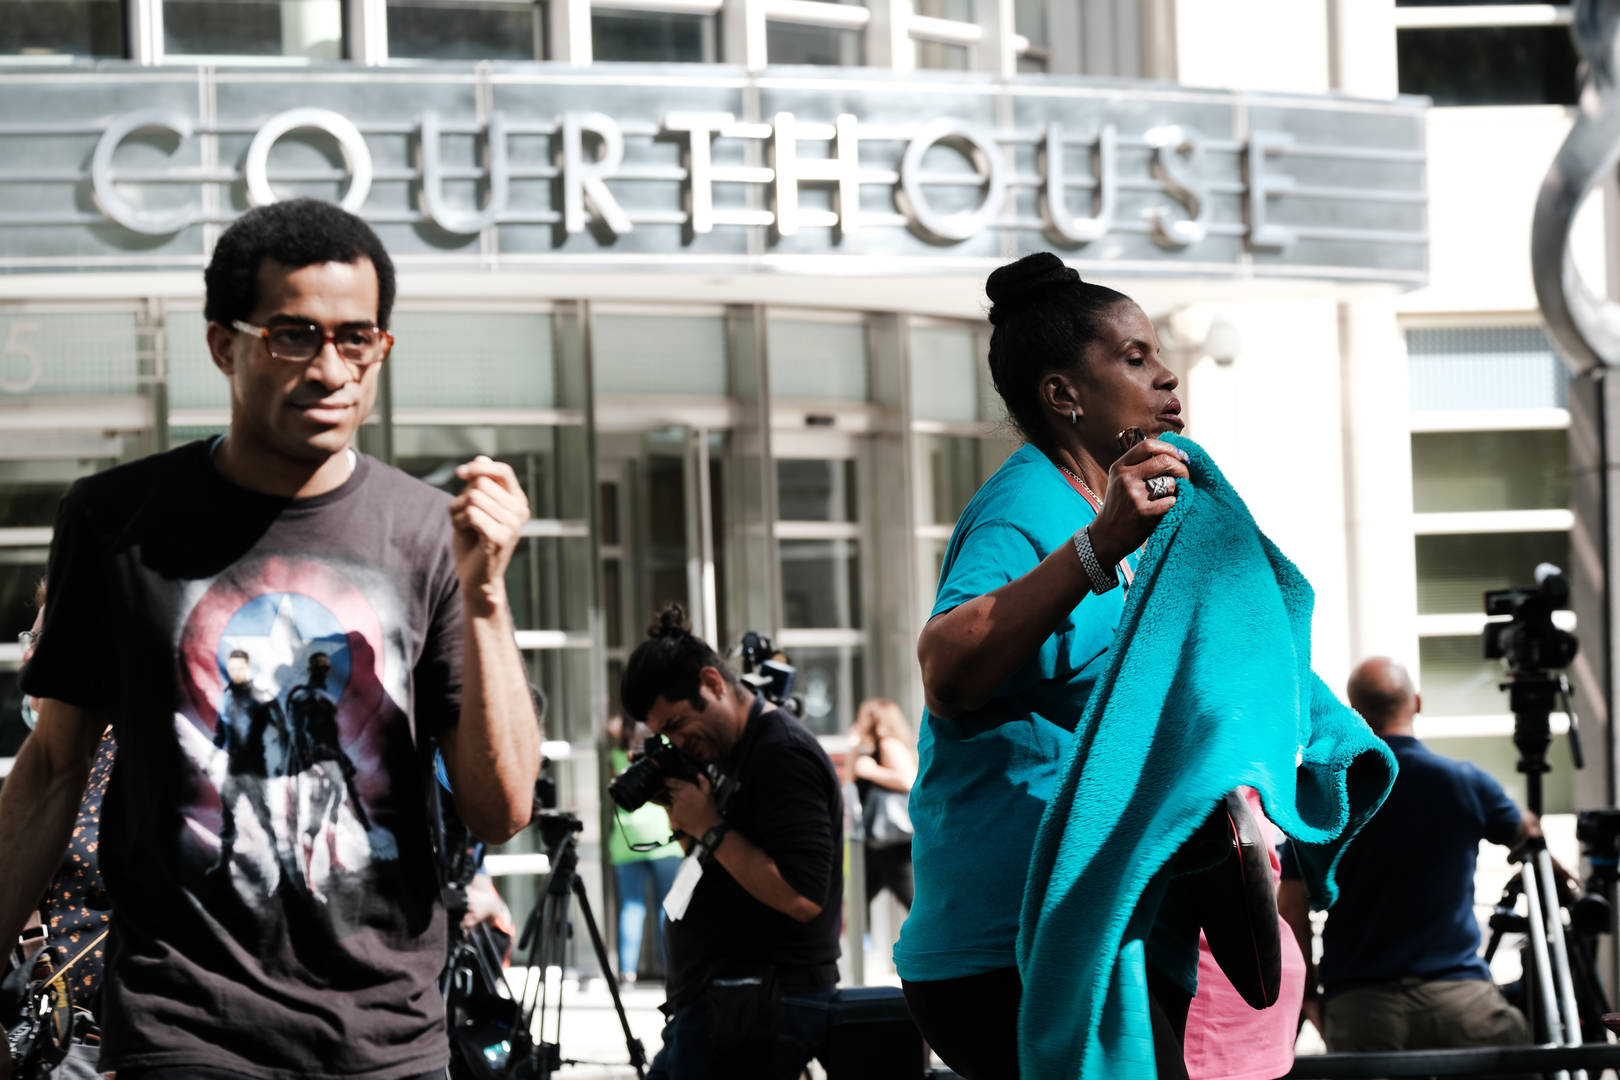 r kelly supporters outside courthouse